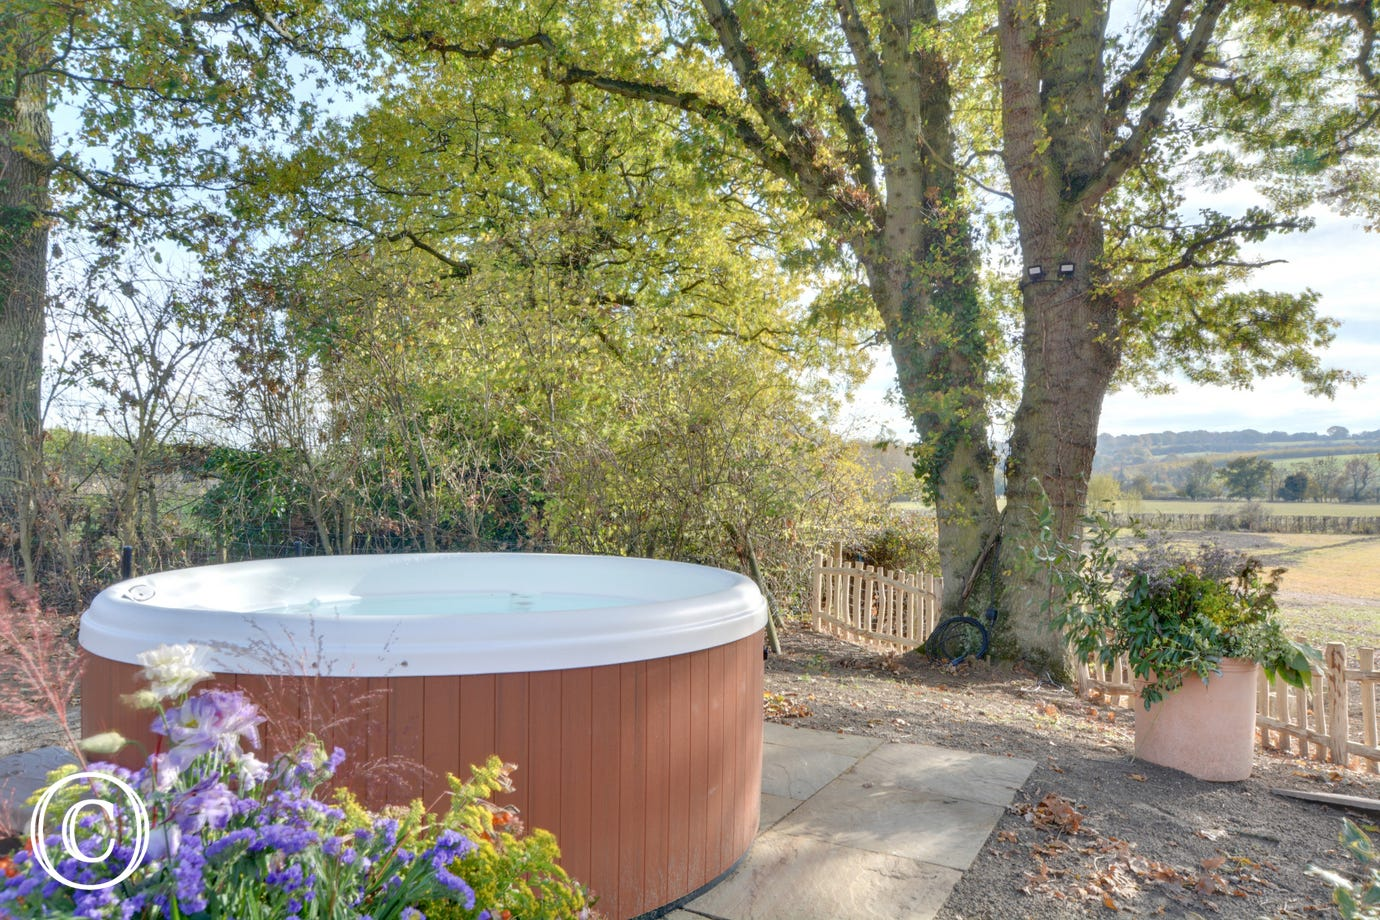 SX938 - Hot Tub - View 2